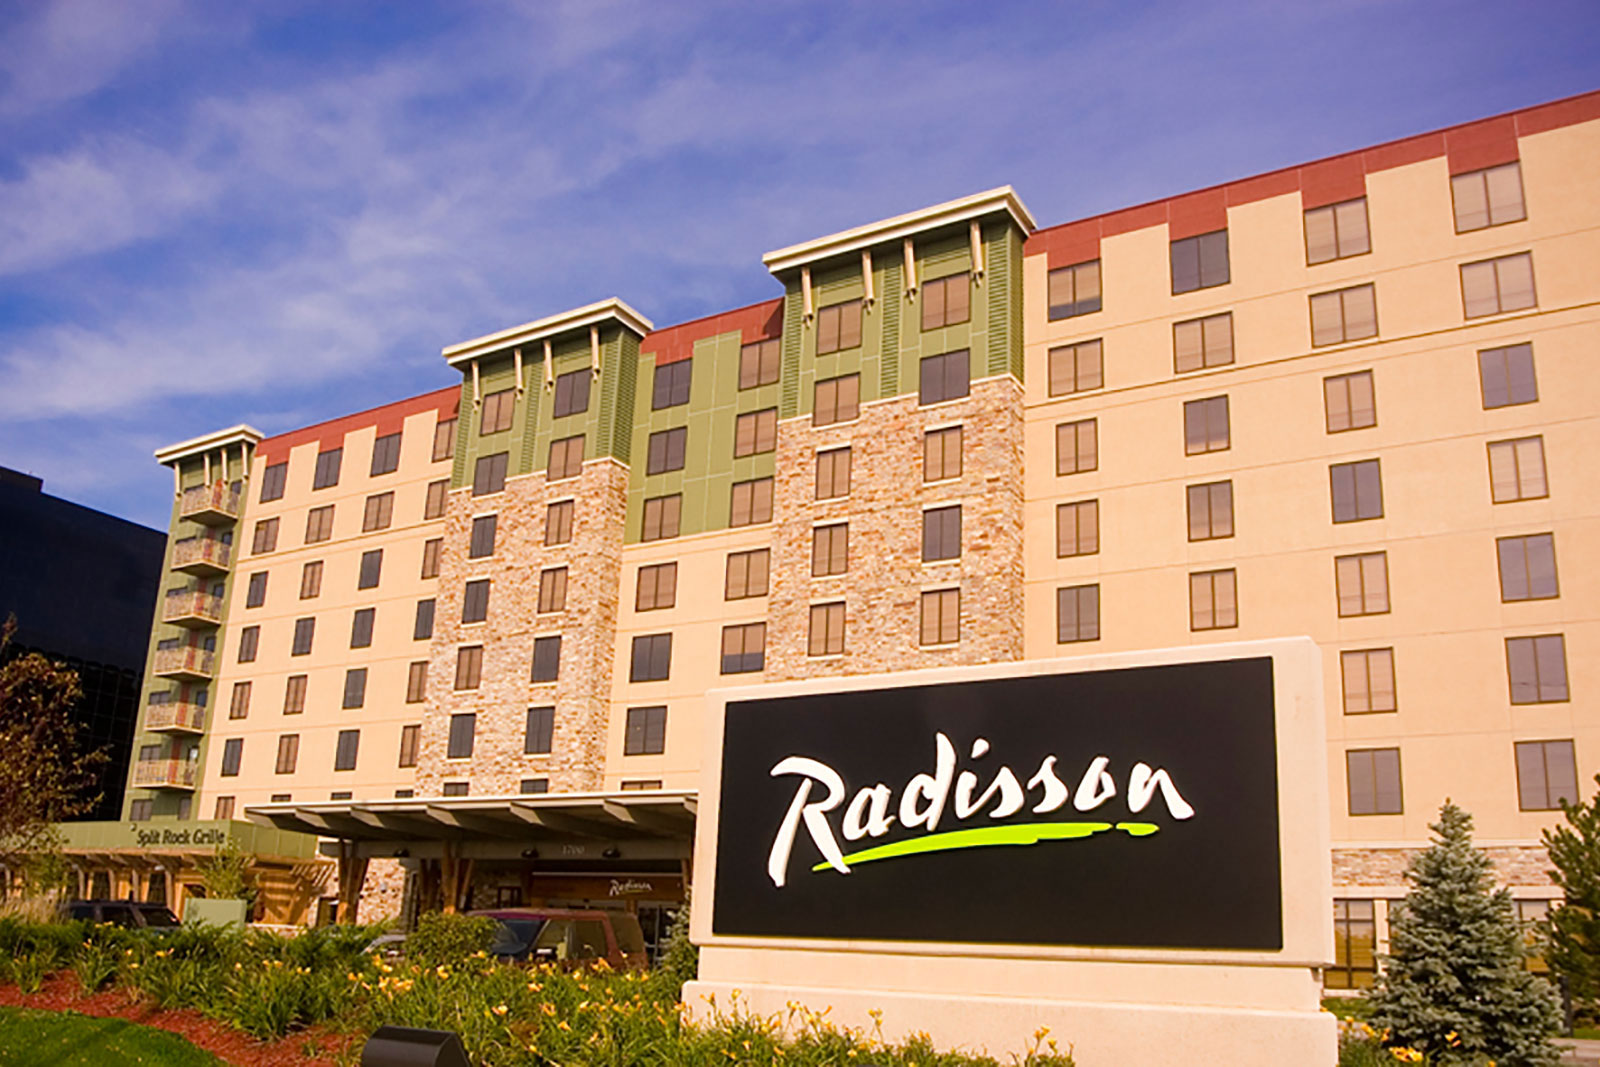 Radisson hotel bloomington by mall of america for Radisson hotel